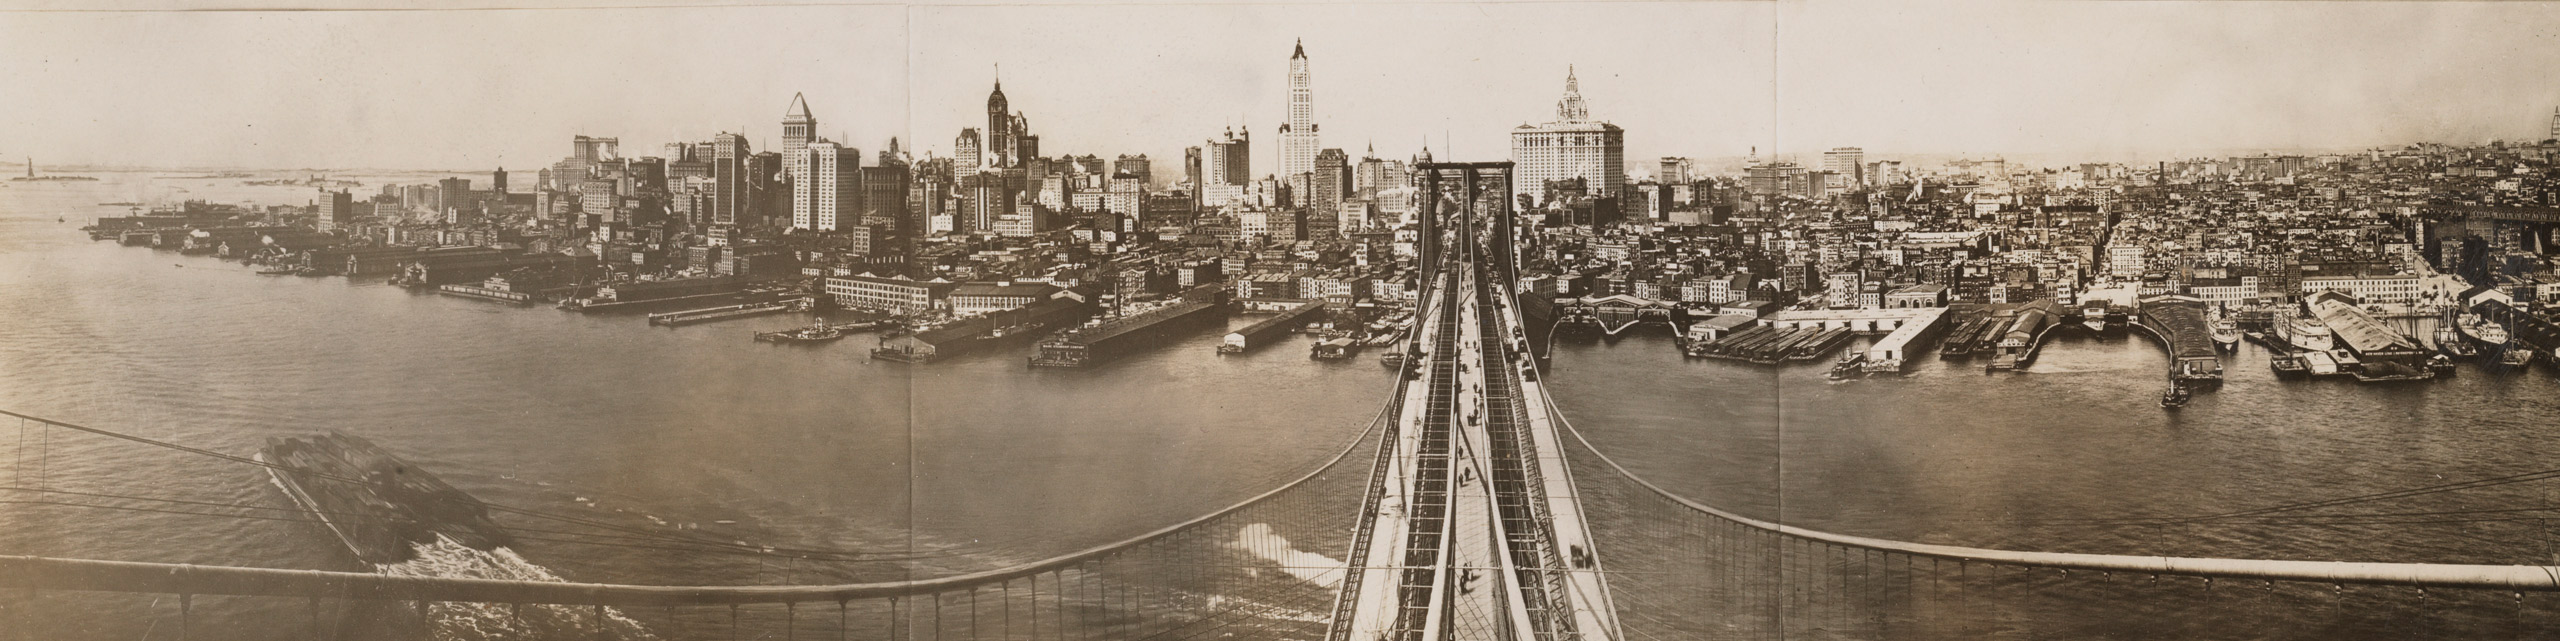 View of the skyline from Brooklyn Bridge tower